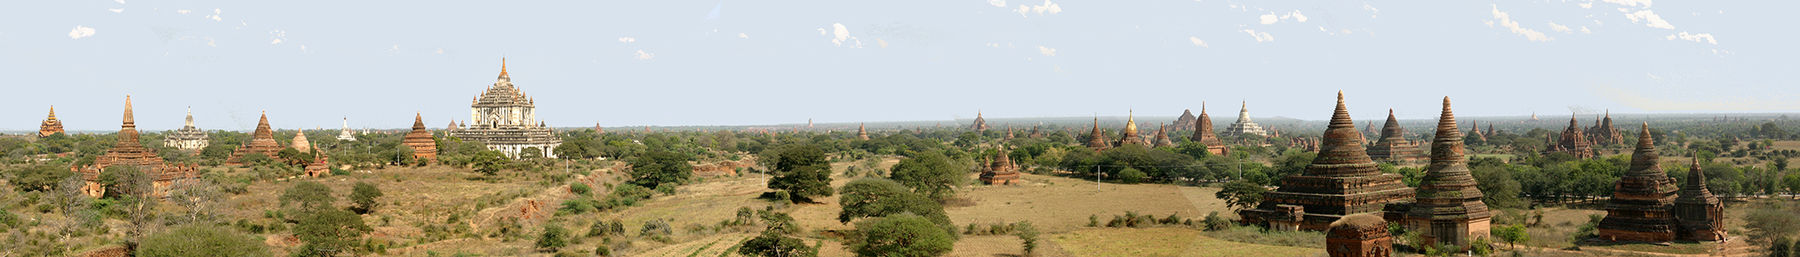 A view over the temples of Bagan, Myanmar